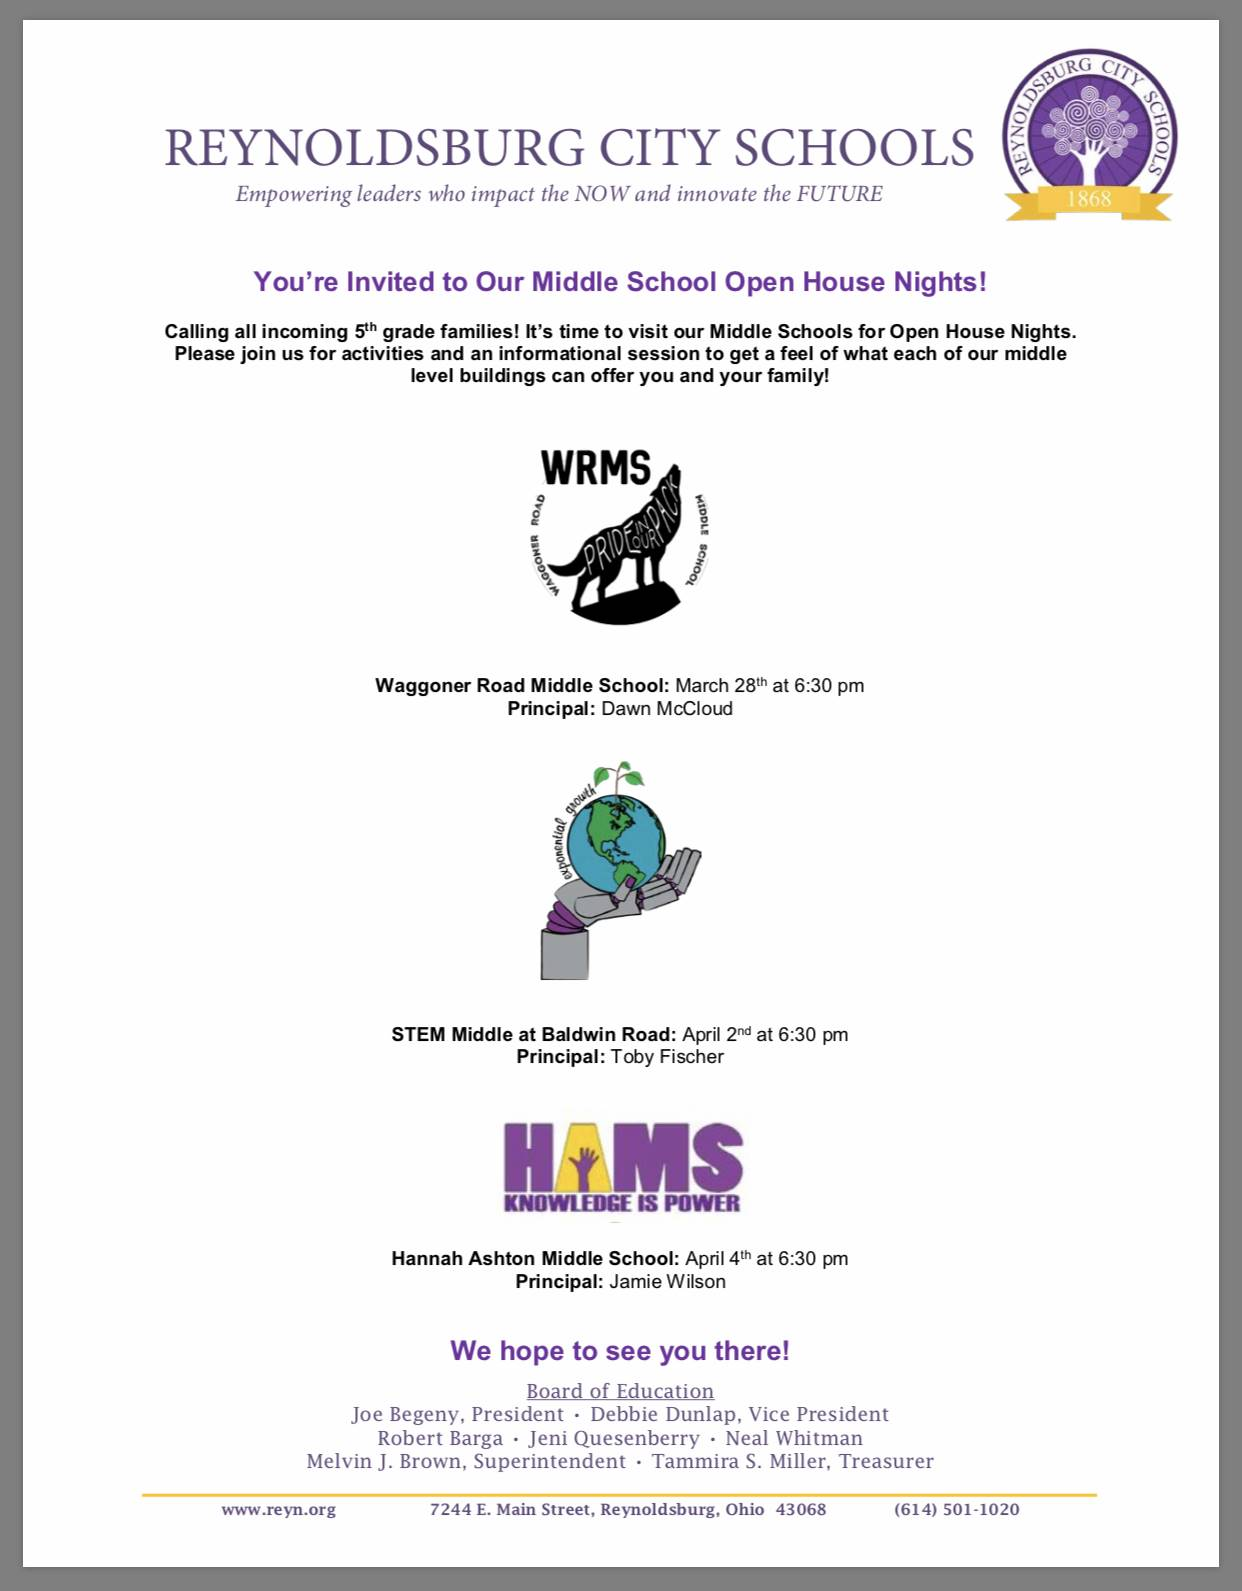 Middle School Open House Dates Times and Locations